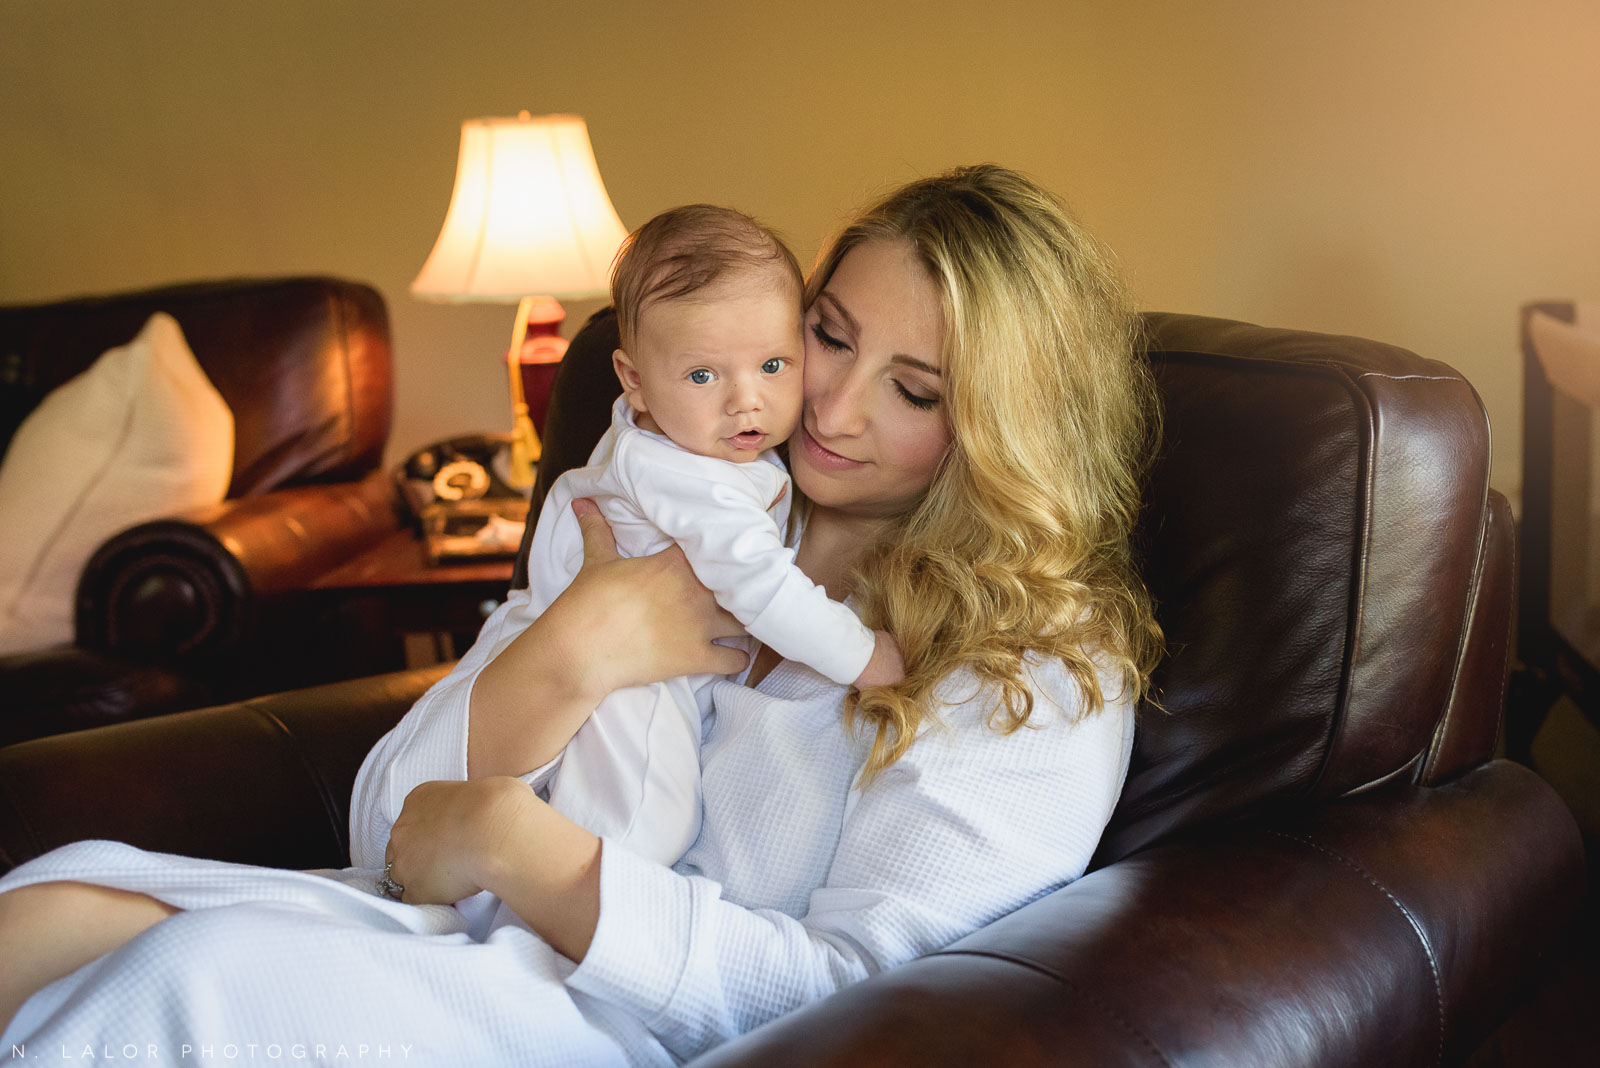 Mom and baby cuddles. In-home photo session with N. Lalor Photography.